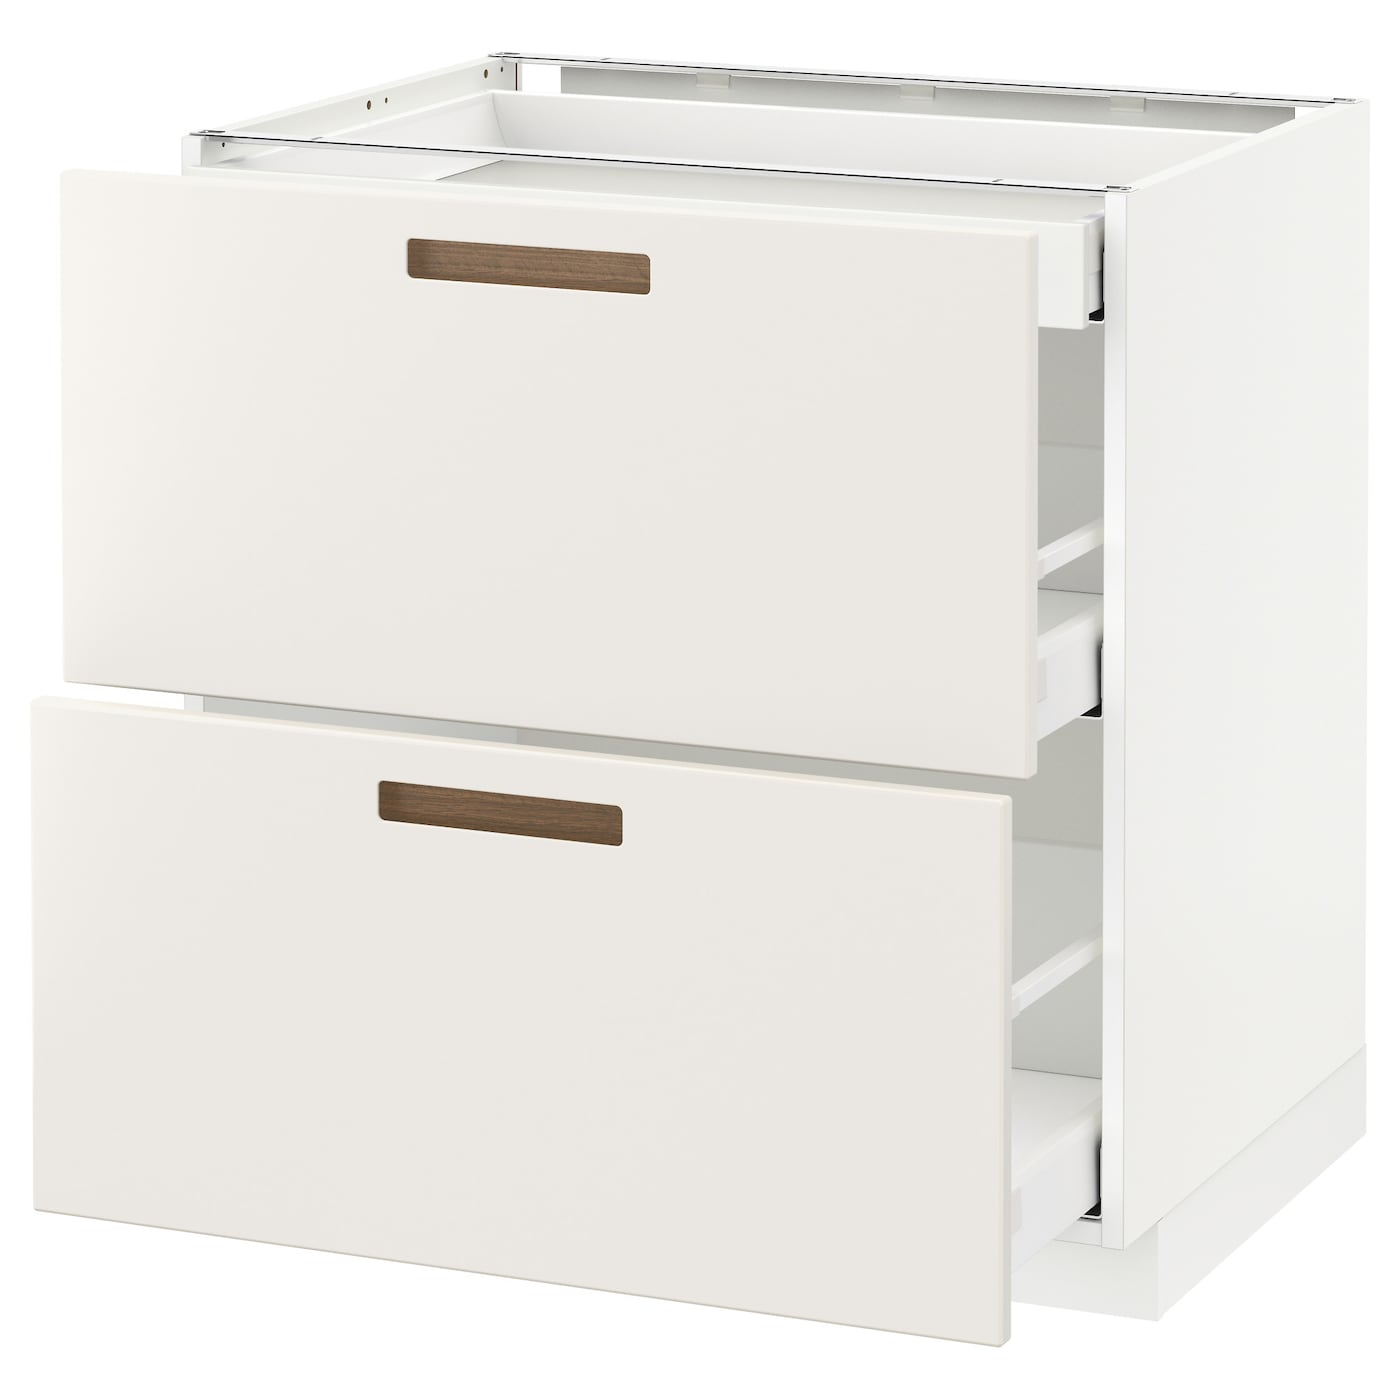 IKEA METOD base cab with 2 fronts/3 drawers Smooth-running drawers with stop.